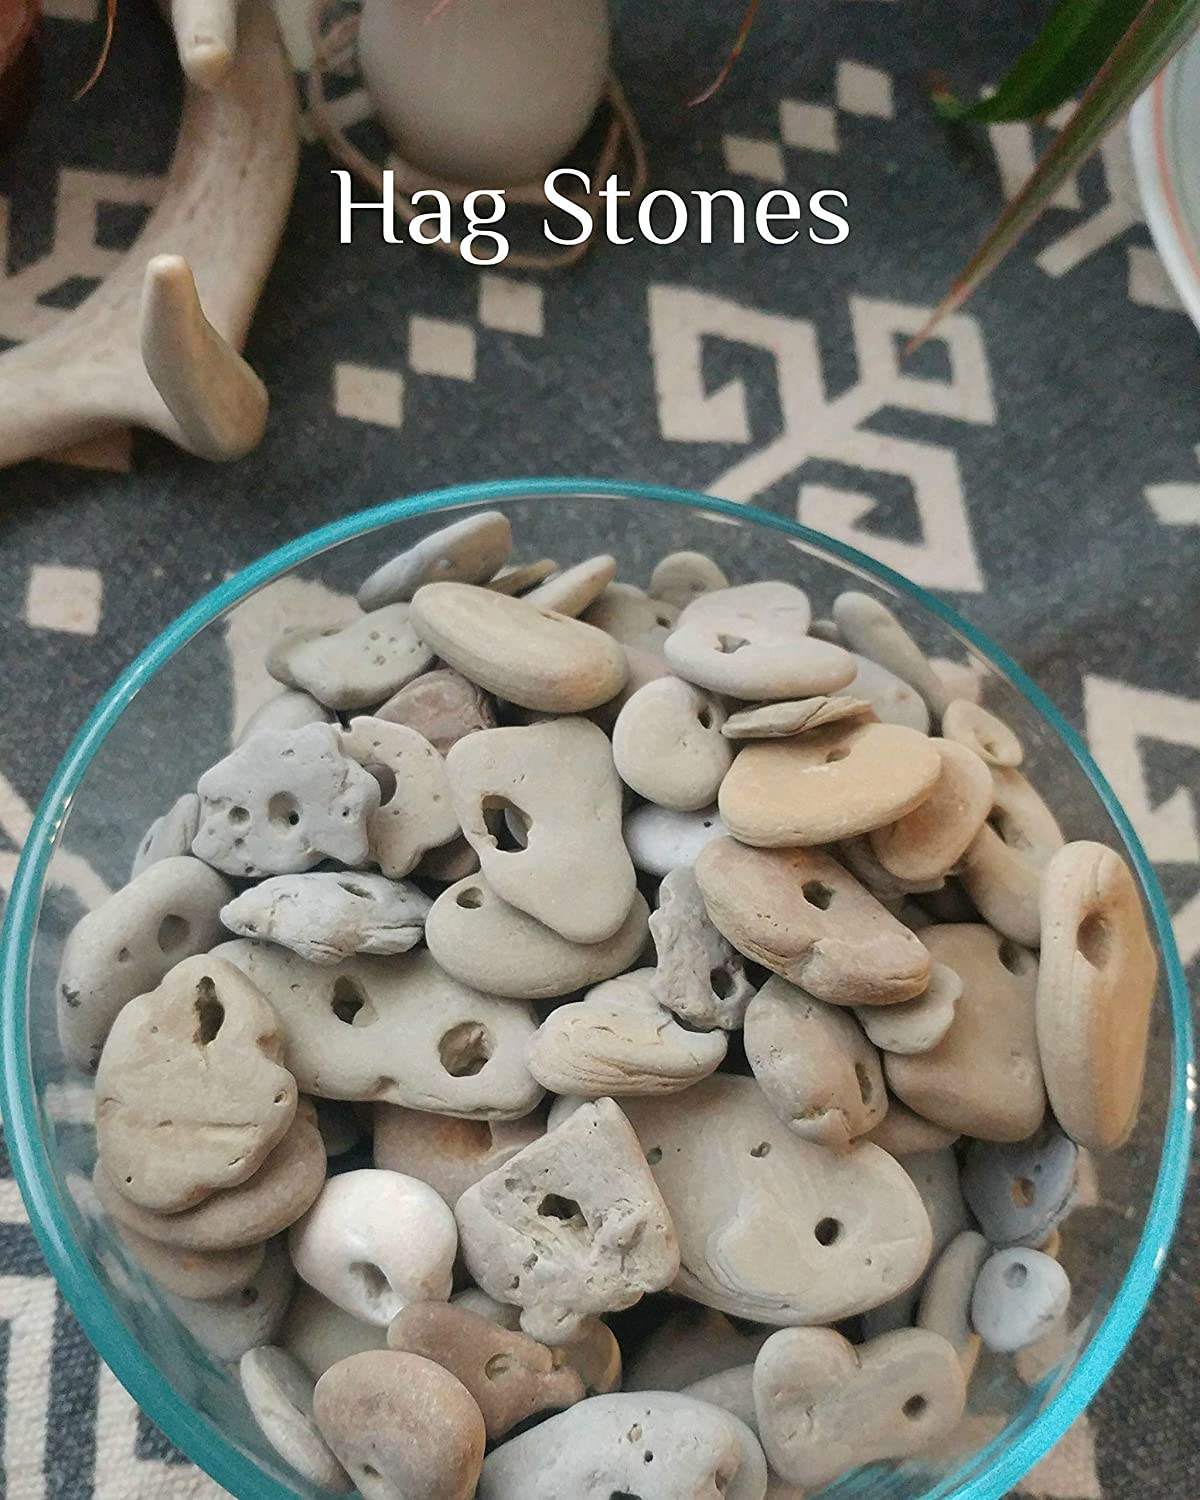 Hag Stone Fossils : We offers stone fossils products.